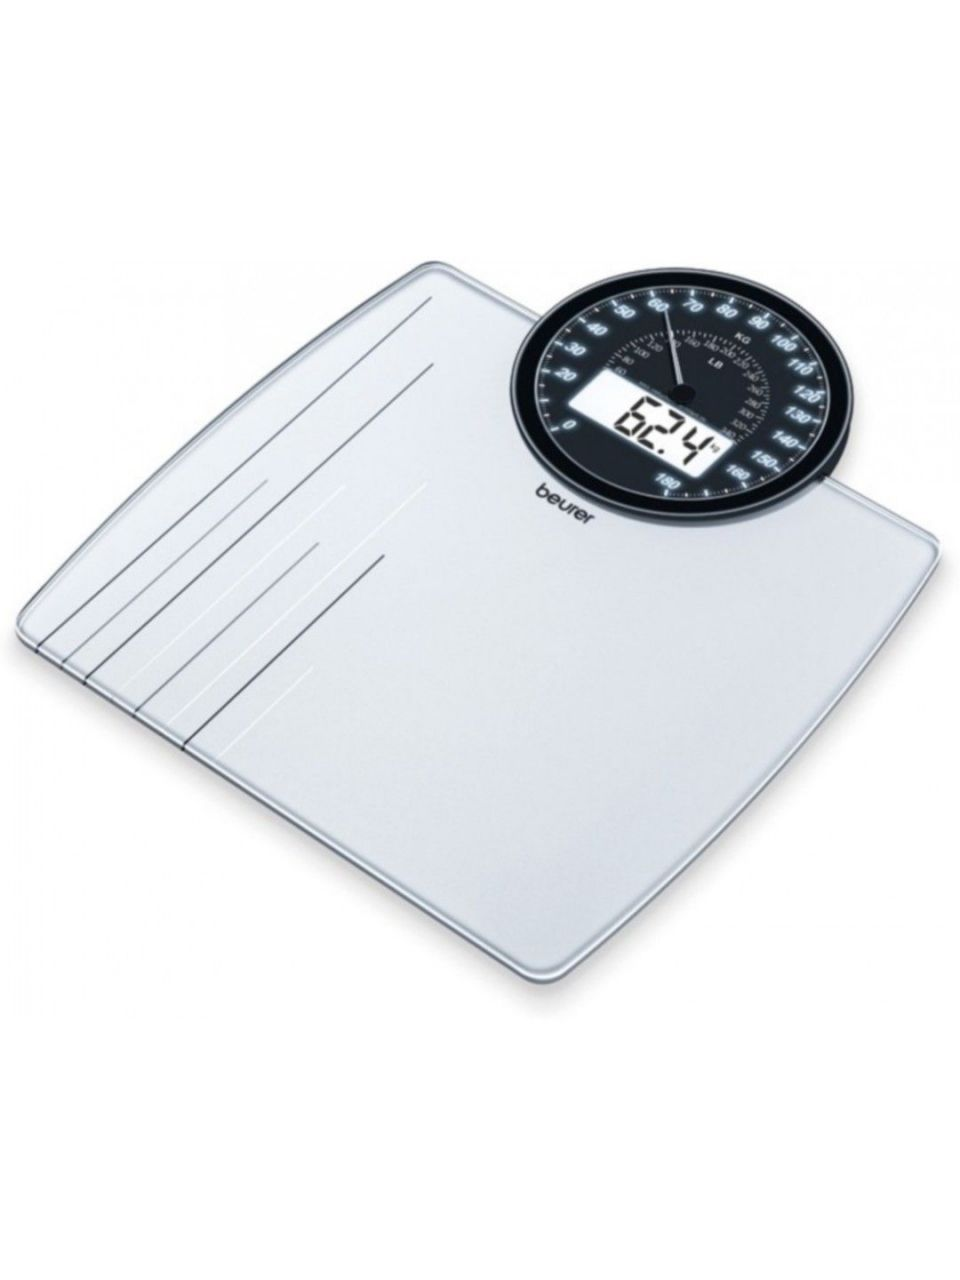 201 Weighing Scales Bathroom Check More At Https Www Michelenails Com 70 Weighing Scales Bathroom Bathroom Scale Bathroom Amazing Bathrooms